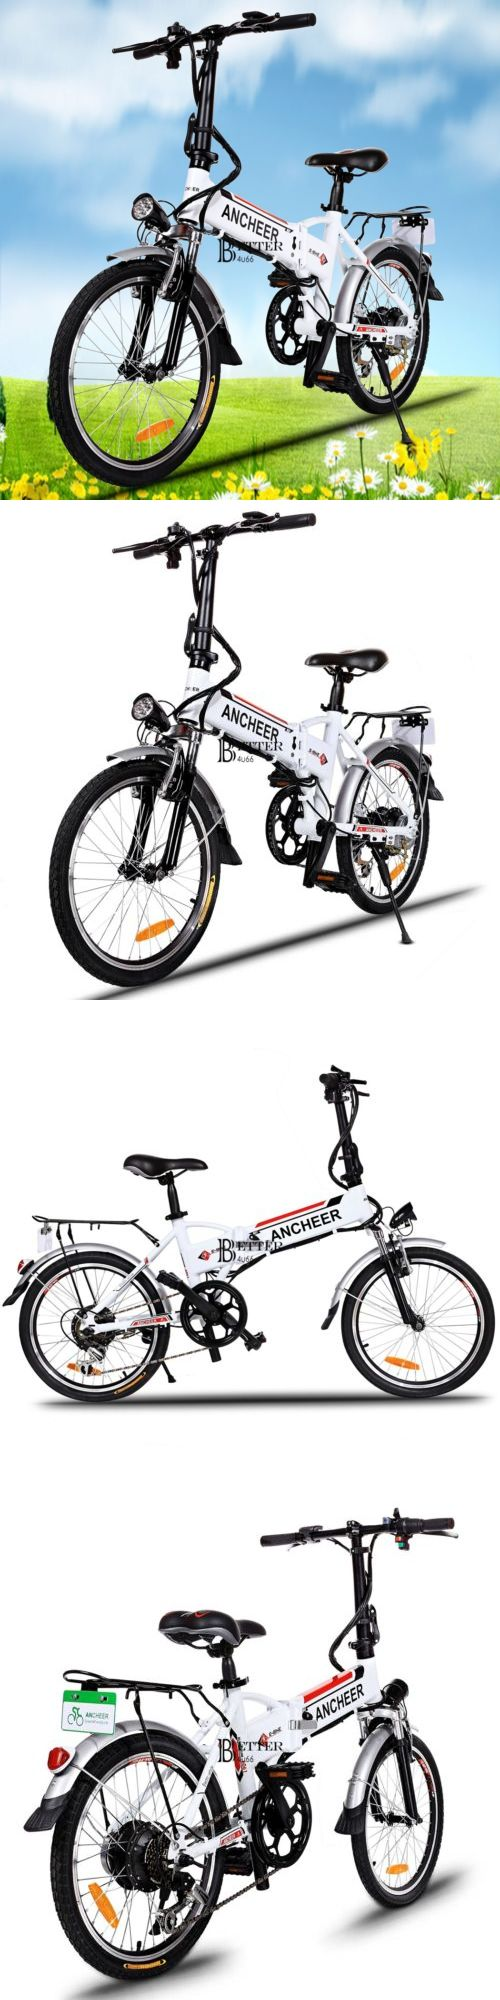 Electric Bicycles 74469: Newest Electric Folding Mountain Bike Cycling Bicycle Men Lithium Powered White BUY IT NOW ONLY: $524.4